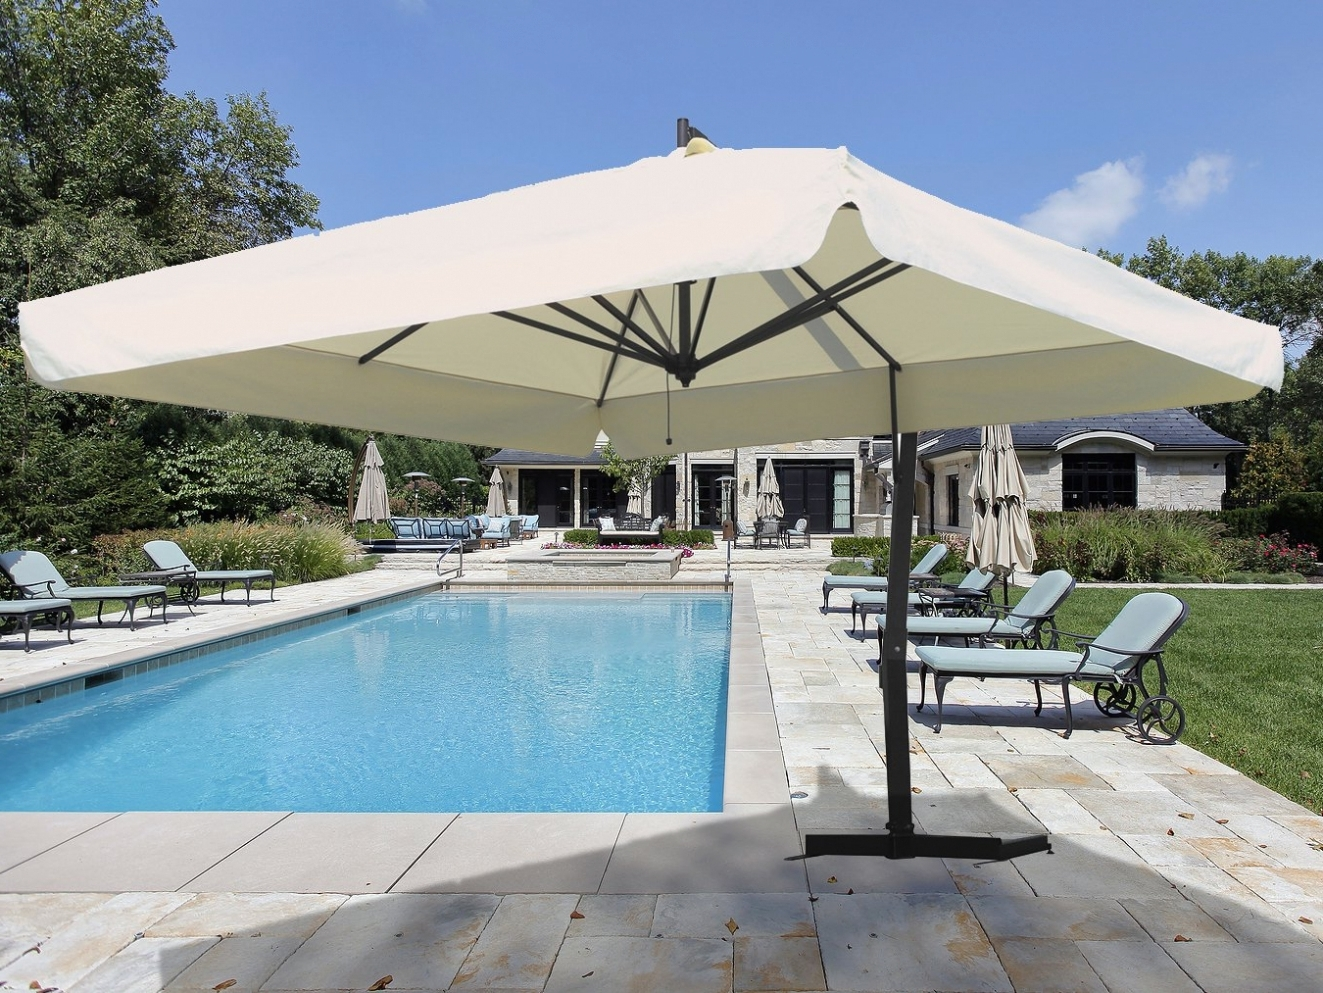 Recent Large Cantilever Patio Umbrellas – Theradmommy With Large Patio Umbrellas (View 20 of 20)